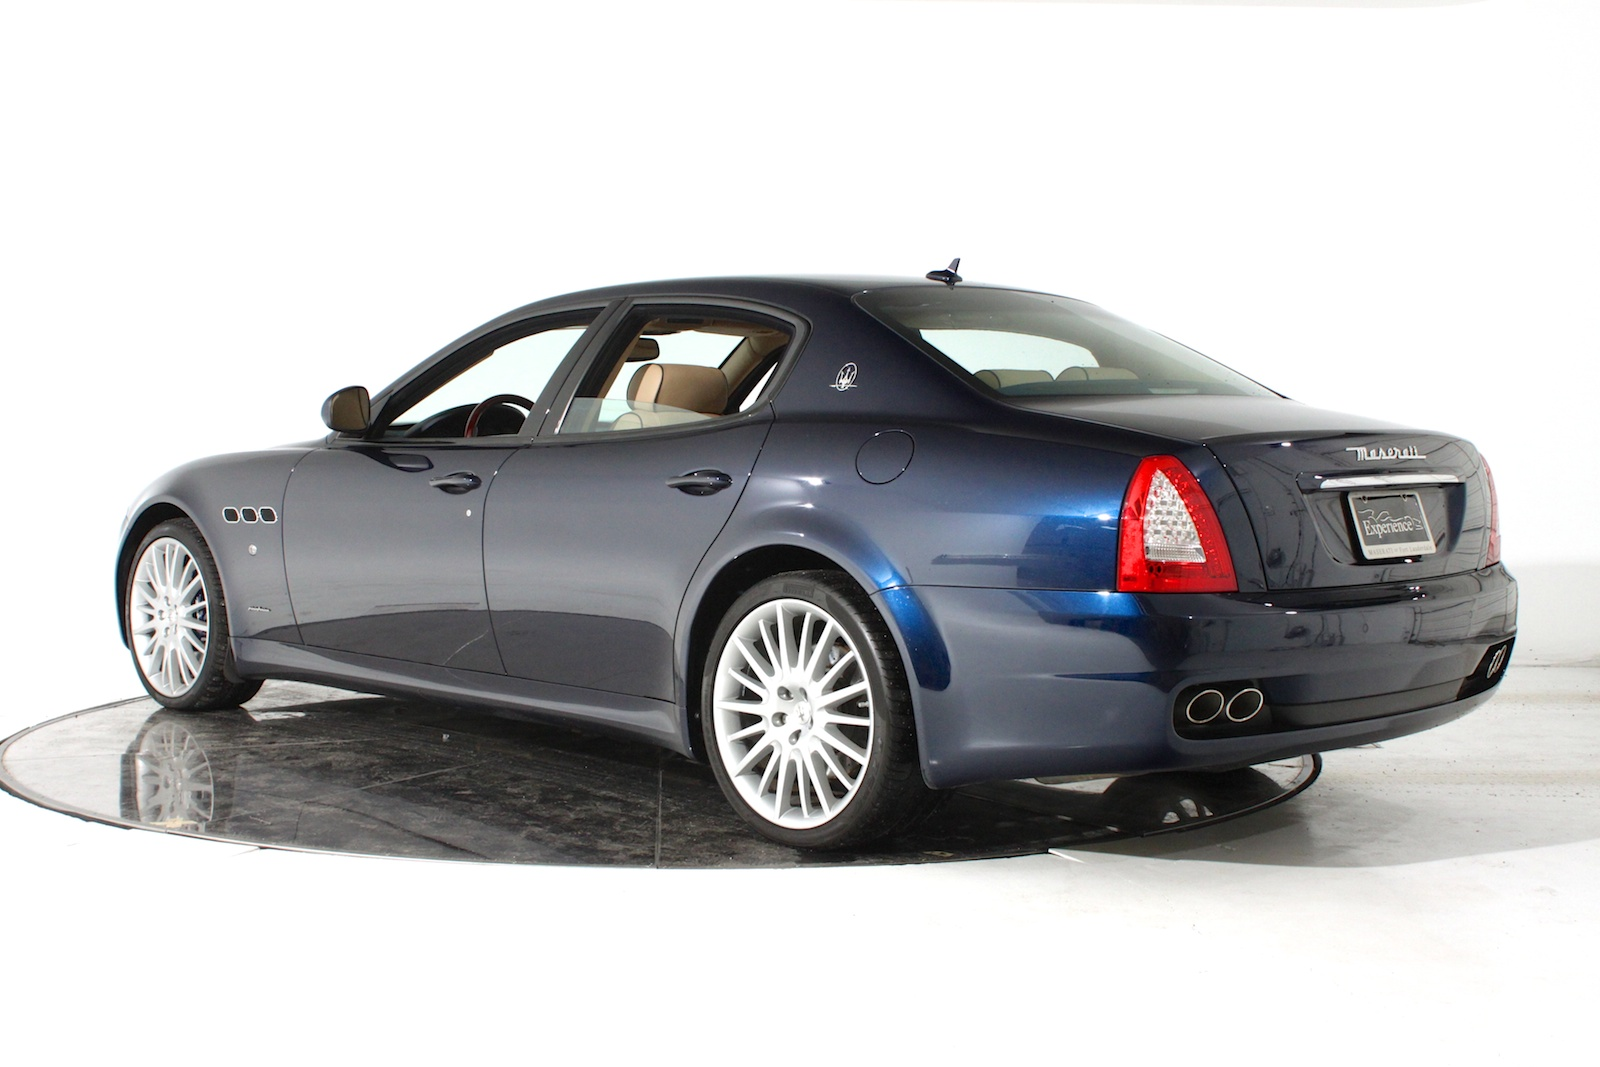 Maserati Quattroporte S 2012 photo - 9